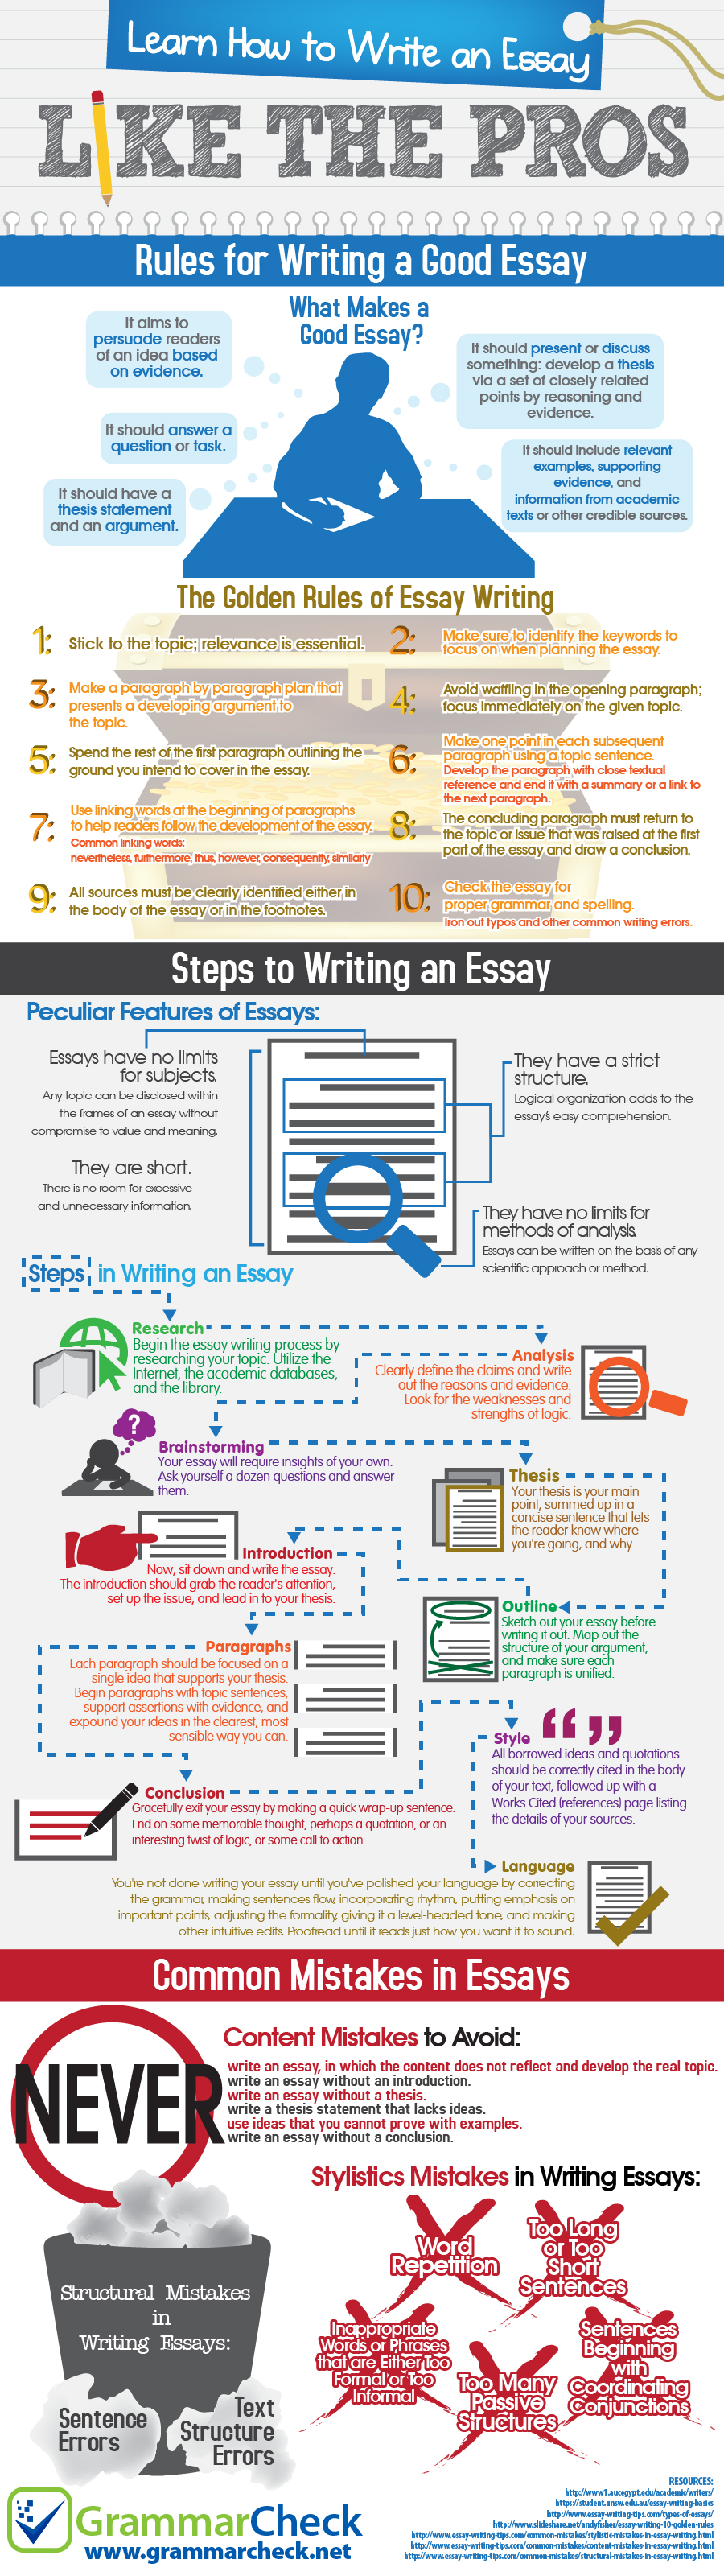 How to write essay?